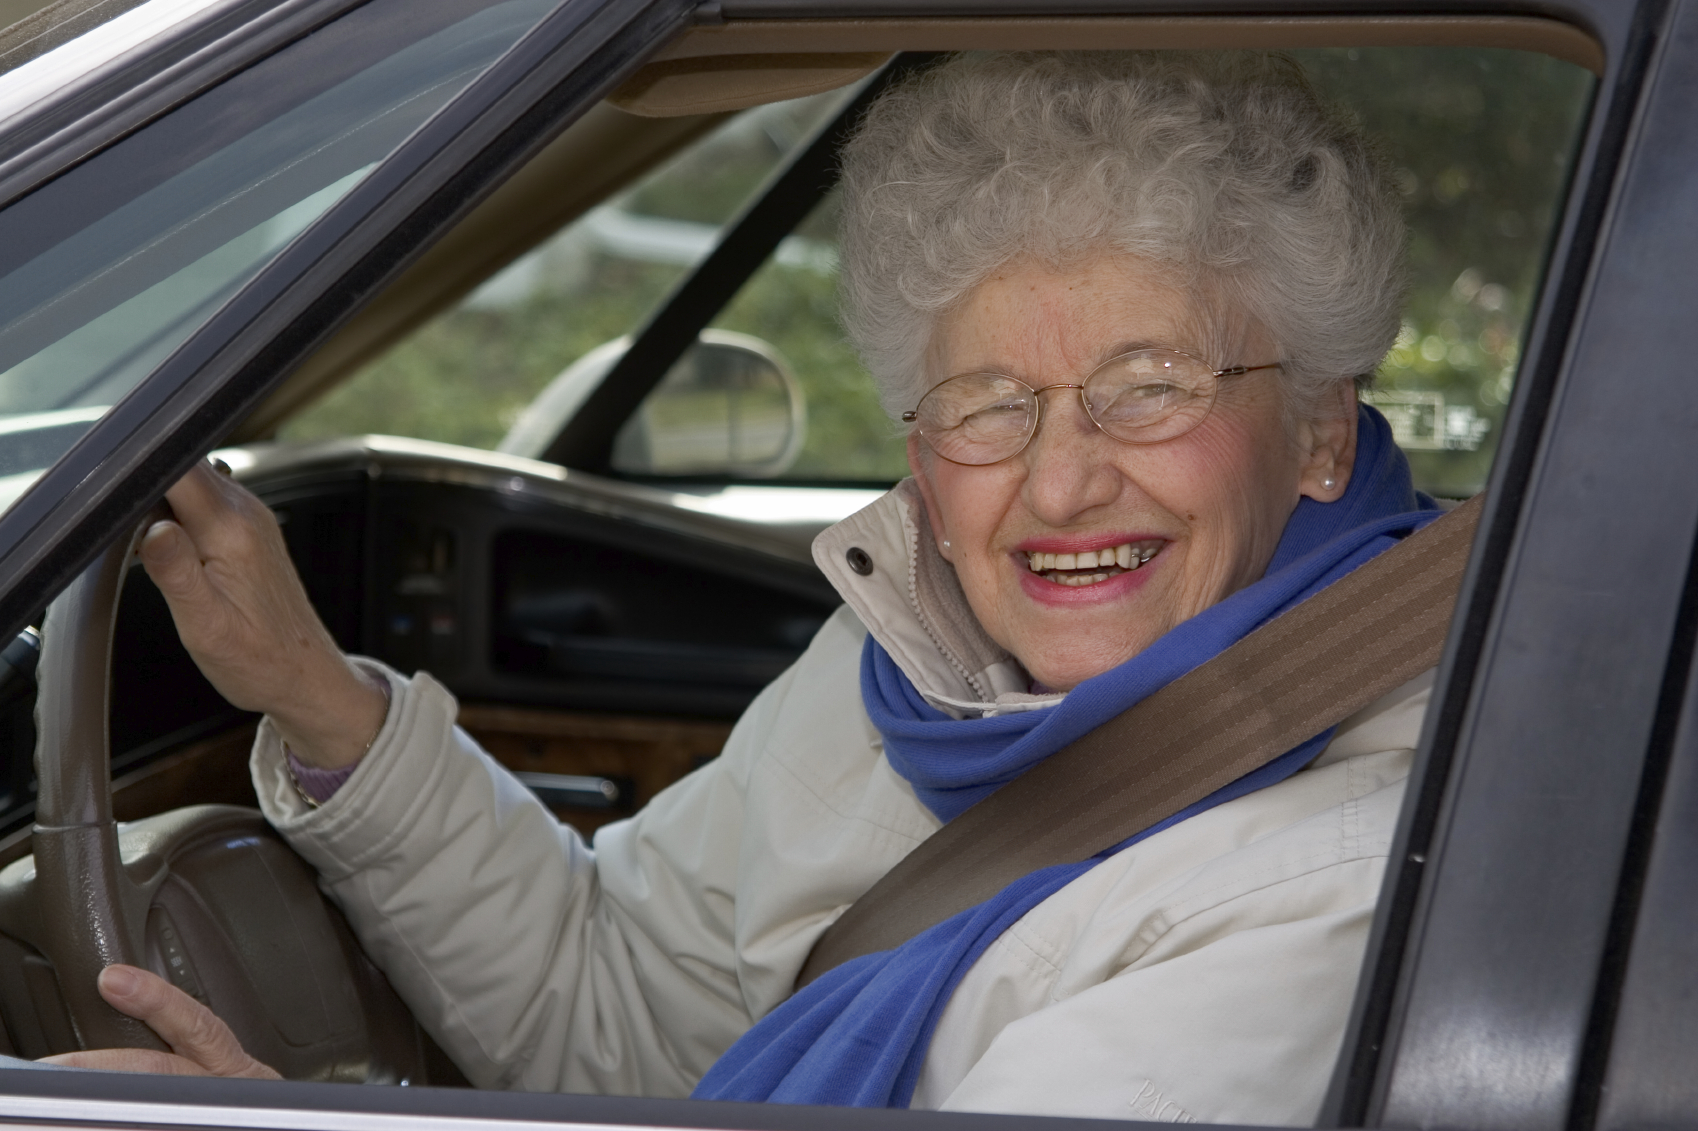 A senior woman at the wheel of her car. Reference image 2559 taken February 10, 2006 by John Archer.